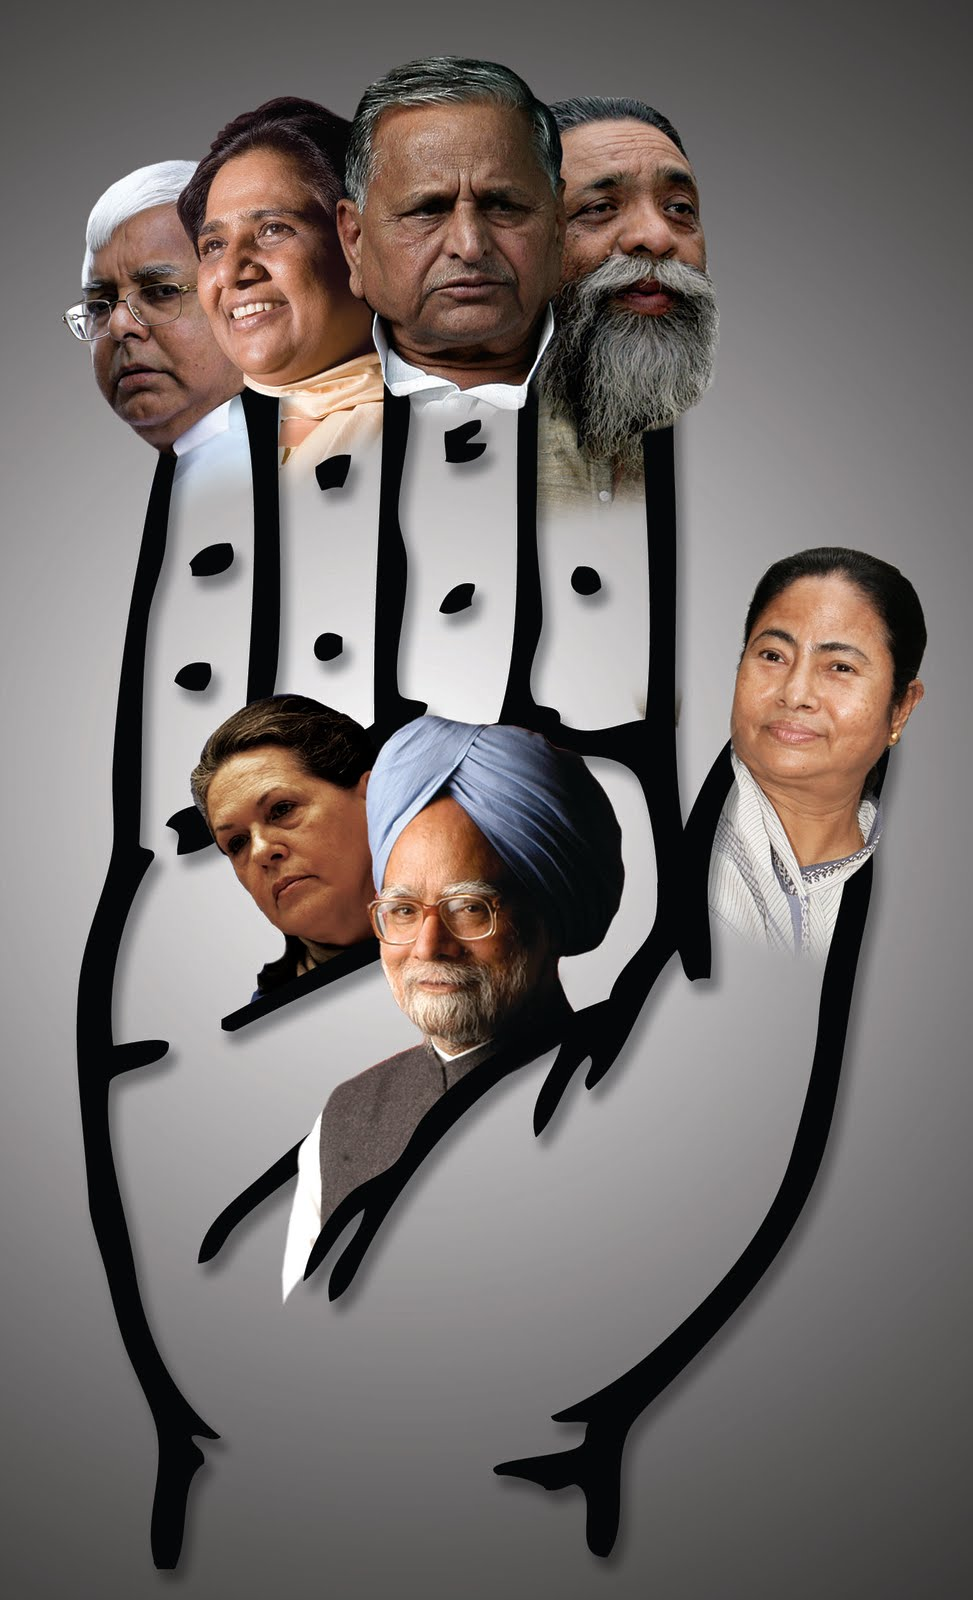 essay on indian politics today The indian politics: good, bad and ugly sadly indian politics stands for none contributors whose stories and perspectives define what matters to today's.